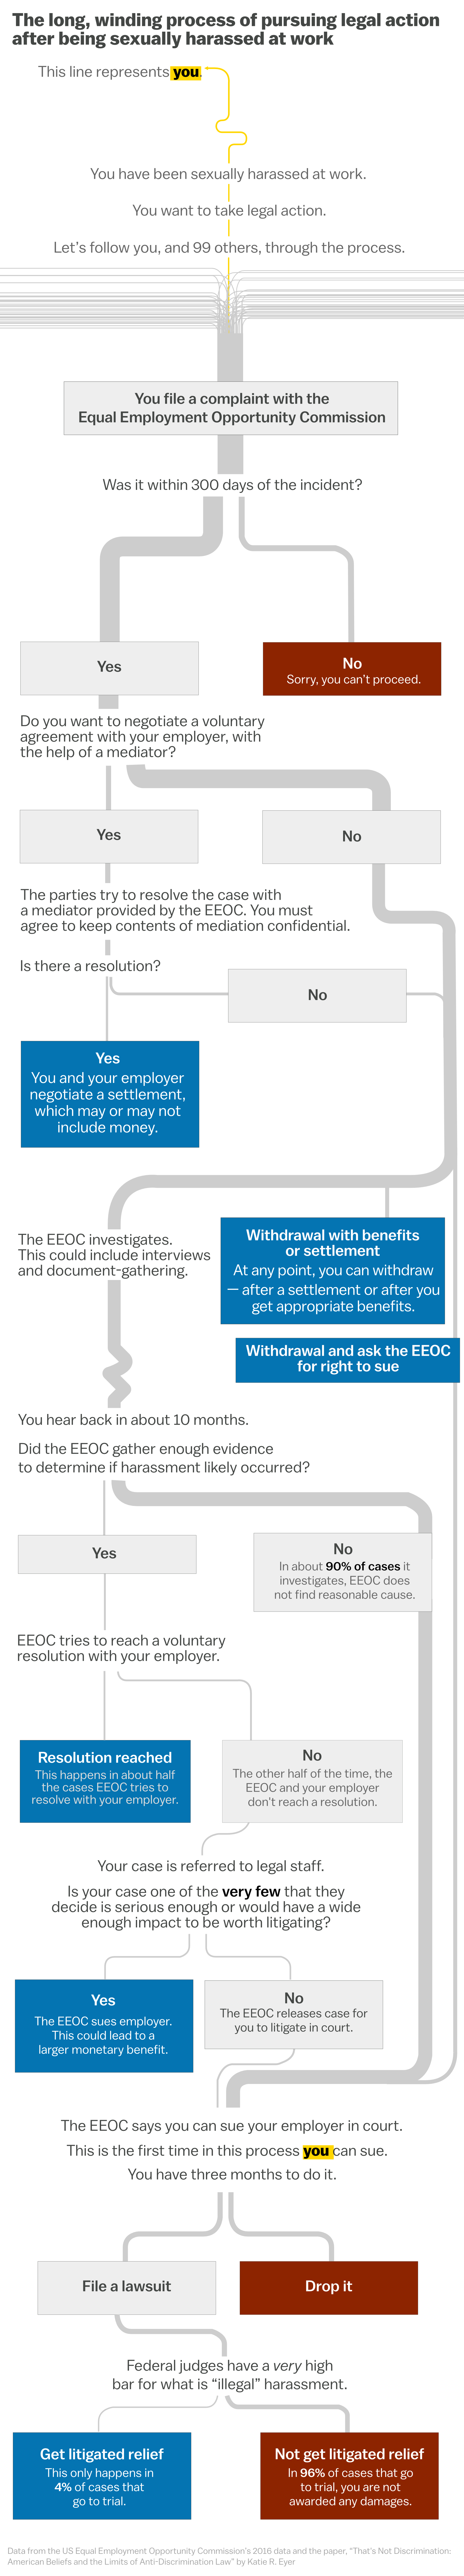 The long twisted path for sexual harassment victims to find legal walk through this flowchart to see how tangled the process is and how difficult it can be to get justice through the current system nvjuhfo Gallery